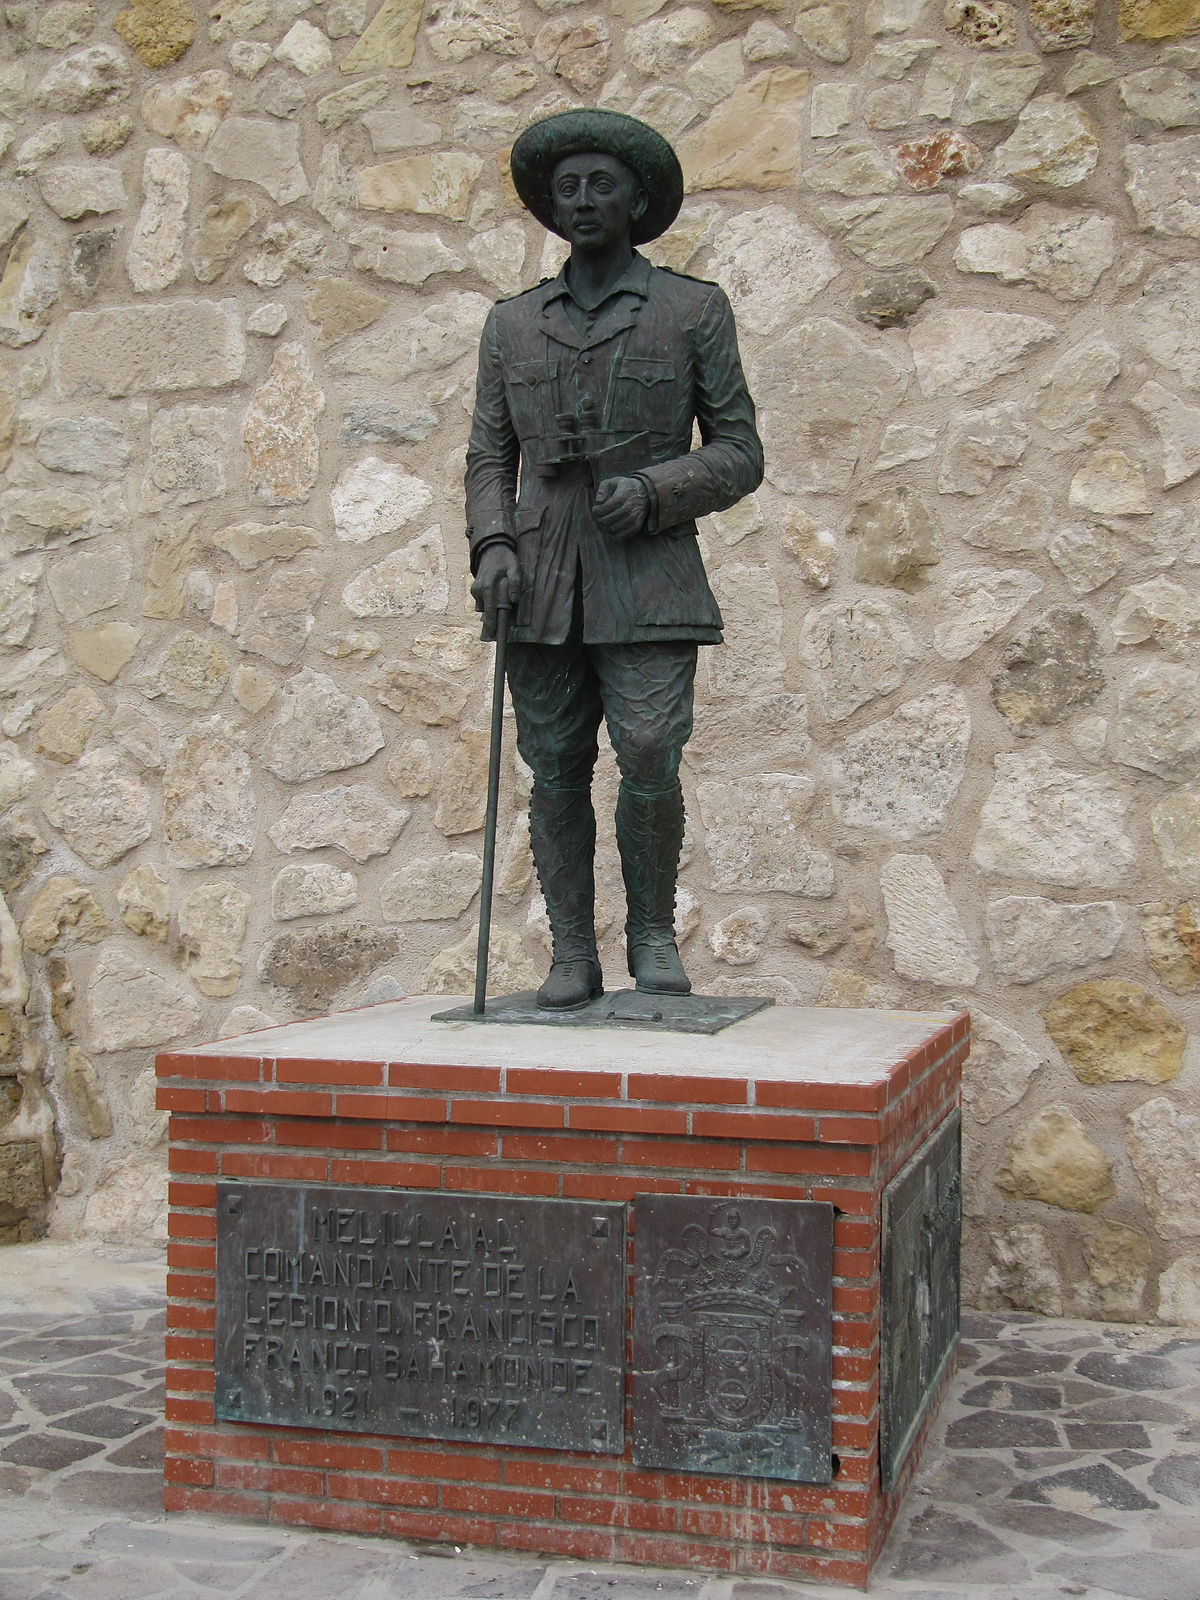 Statue of Francisco Franco, Melilla - Wikipedia